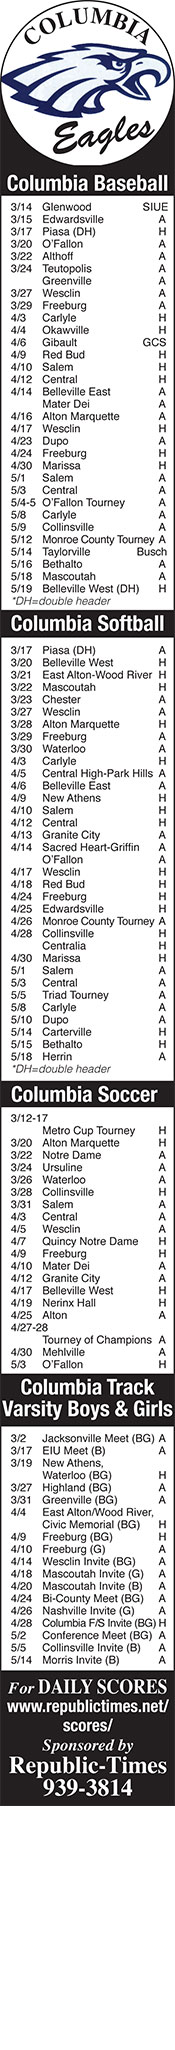 Columbia Sports Schedules 2017-2018